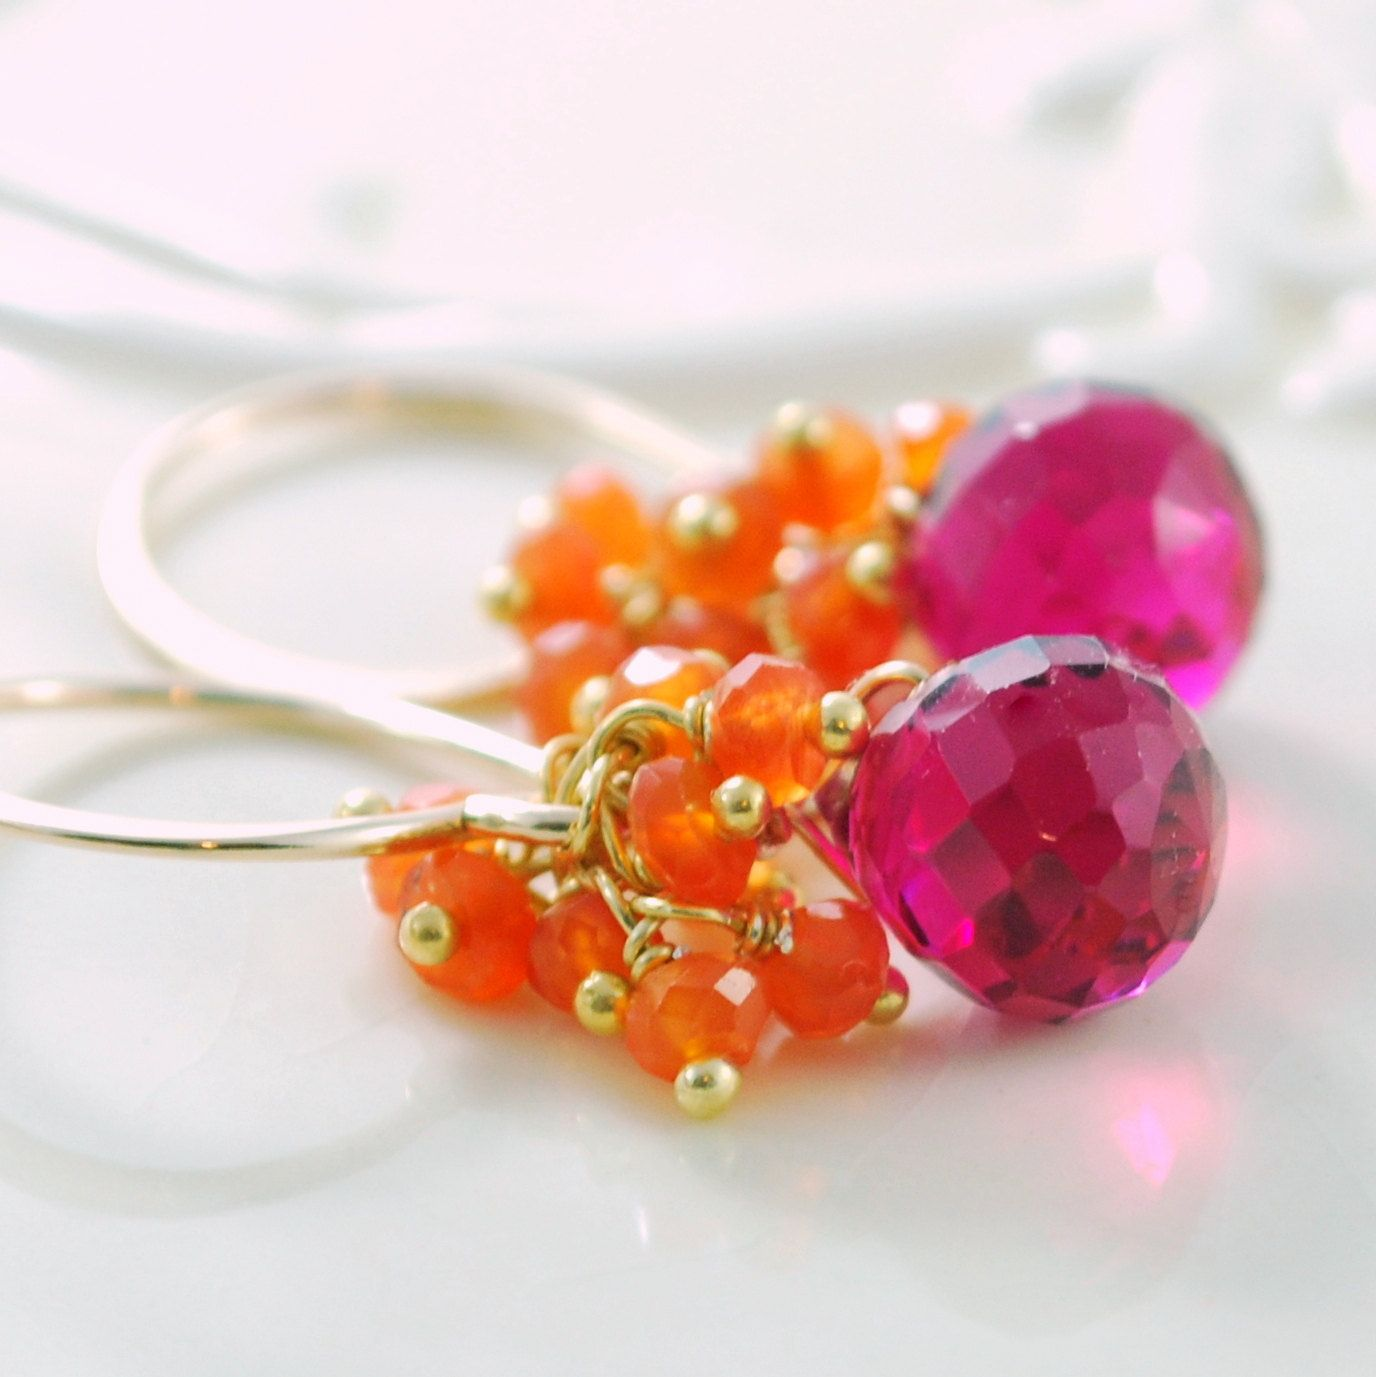 Orange Carnelian Earrings Hot Pink Bright Fuchsia Quartz Semiprecious Gemstone Wire Wrapped Cluster Gold Jewelry Complimentary Shipping.